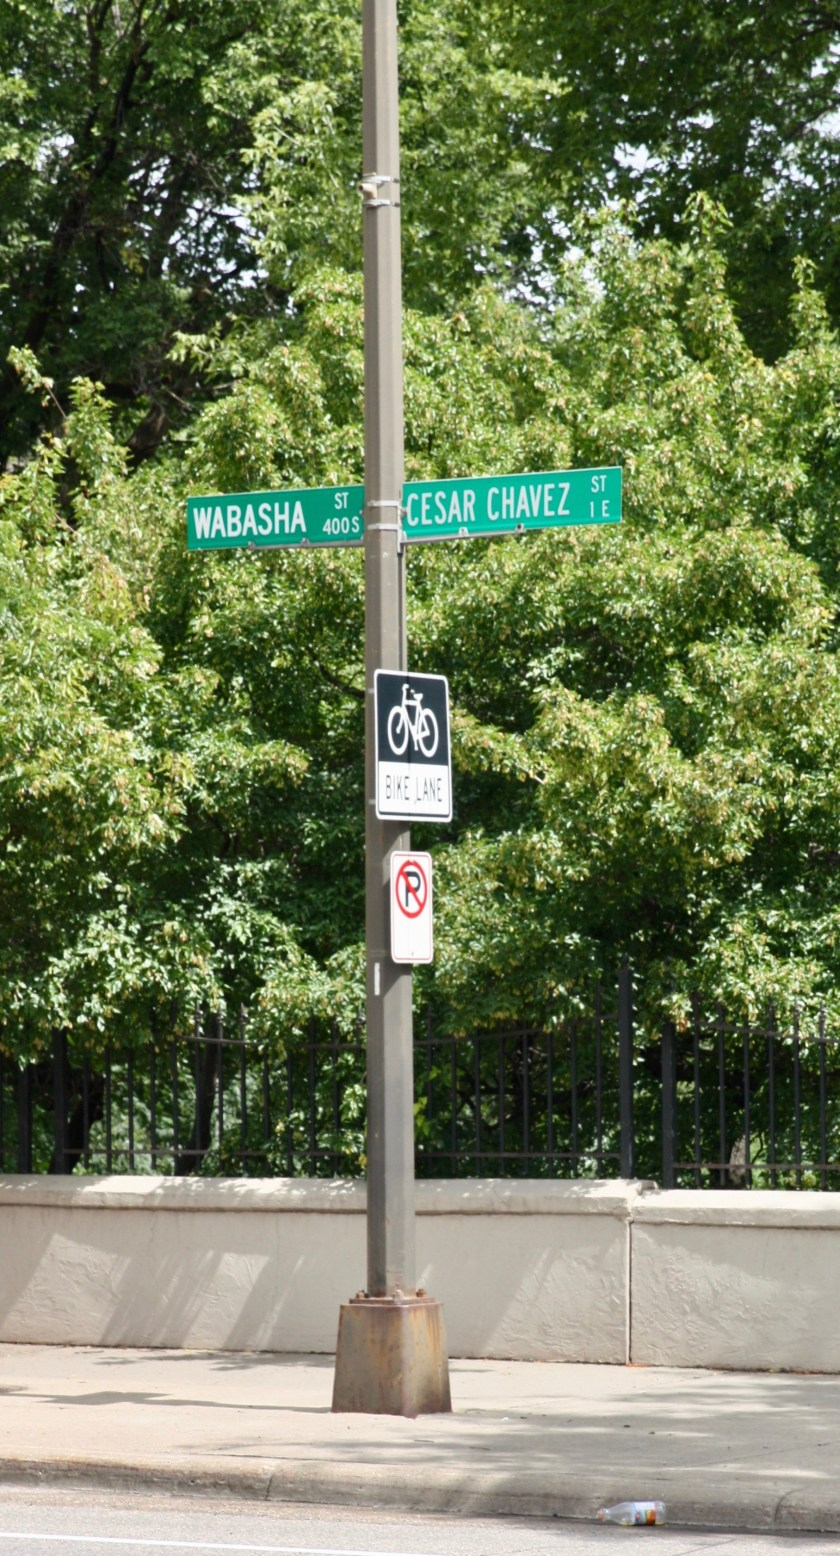 Street signs pointing out the change from Wabasha to Cesar Chavez Street.)